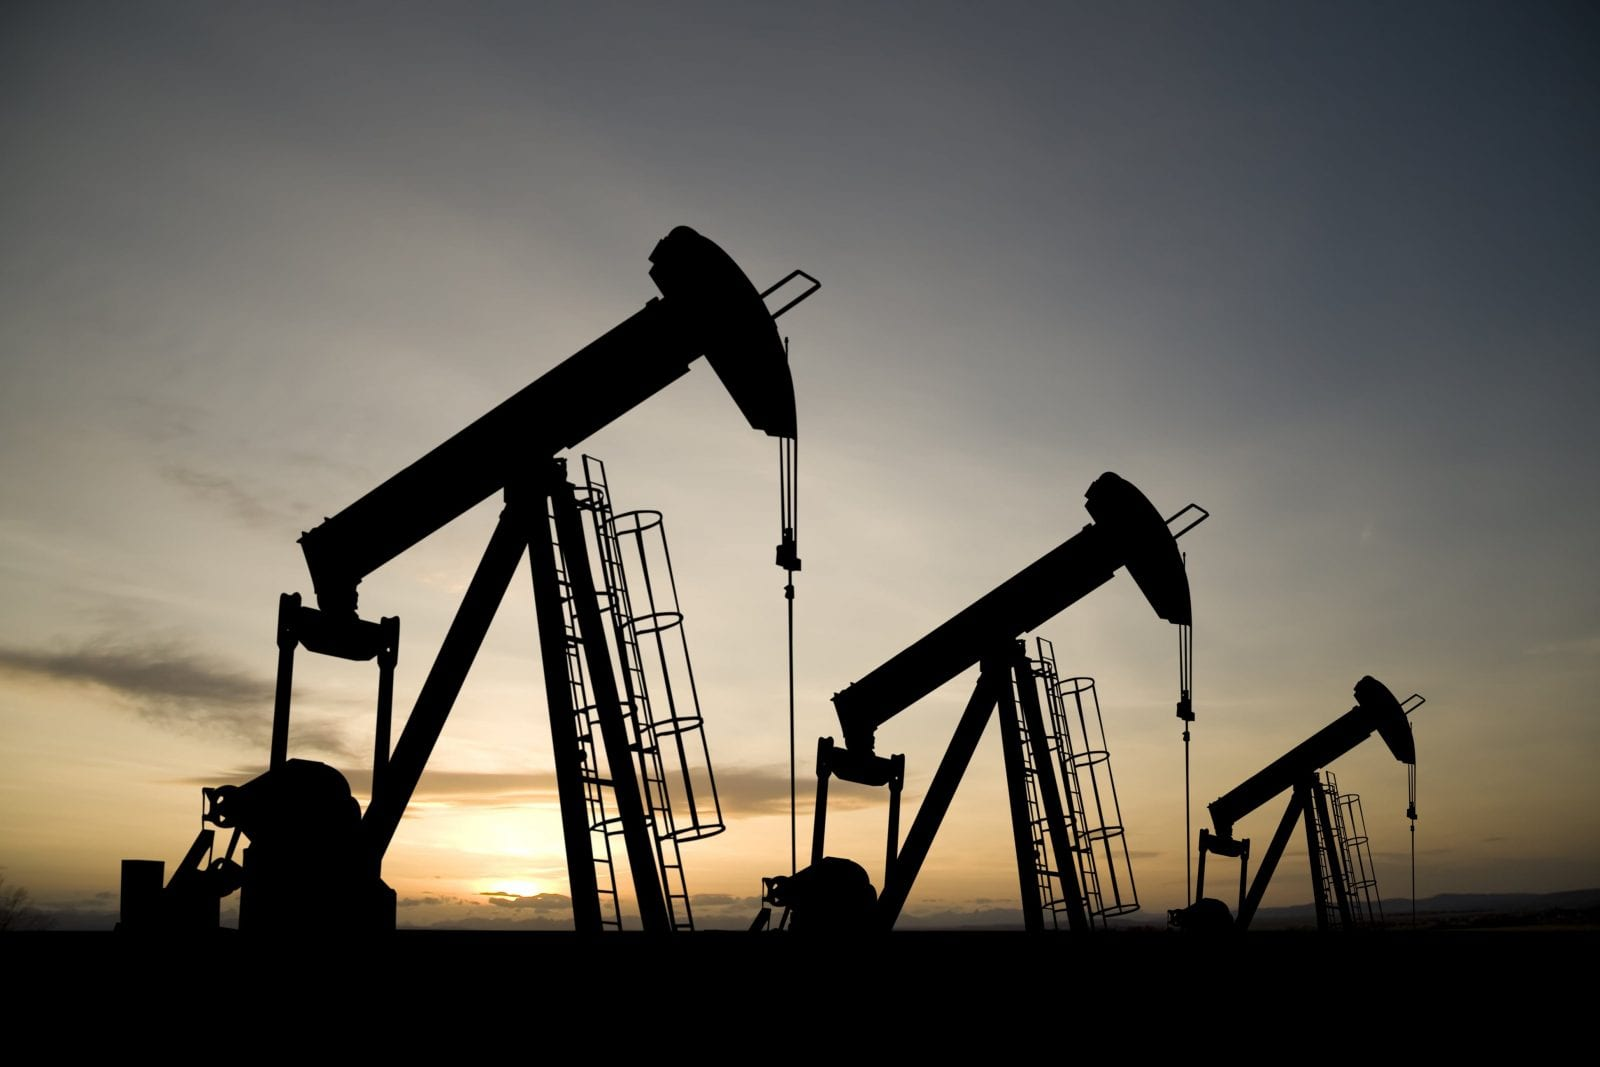 Stock photo of multiple oil drills. Oil Field Accident Attorneys.